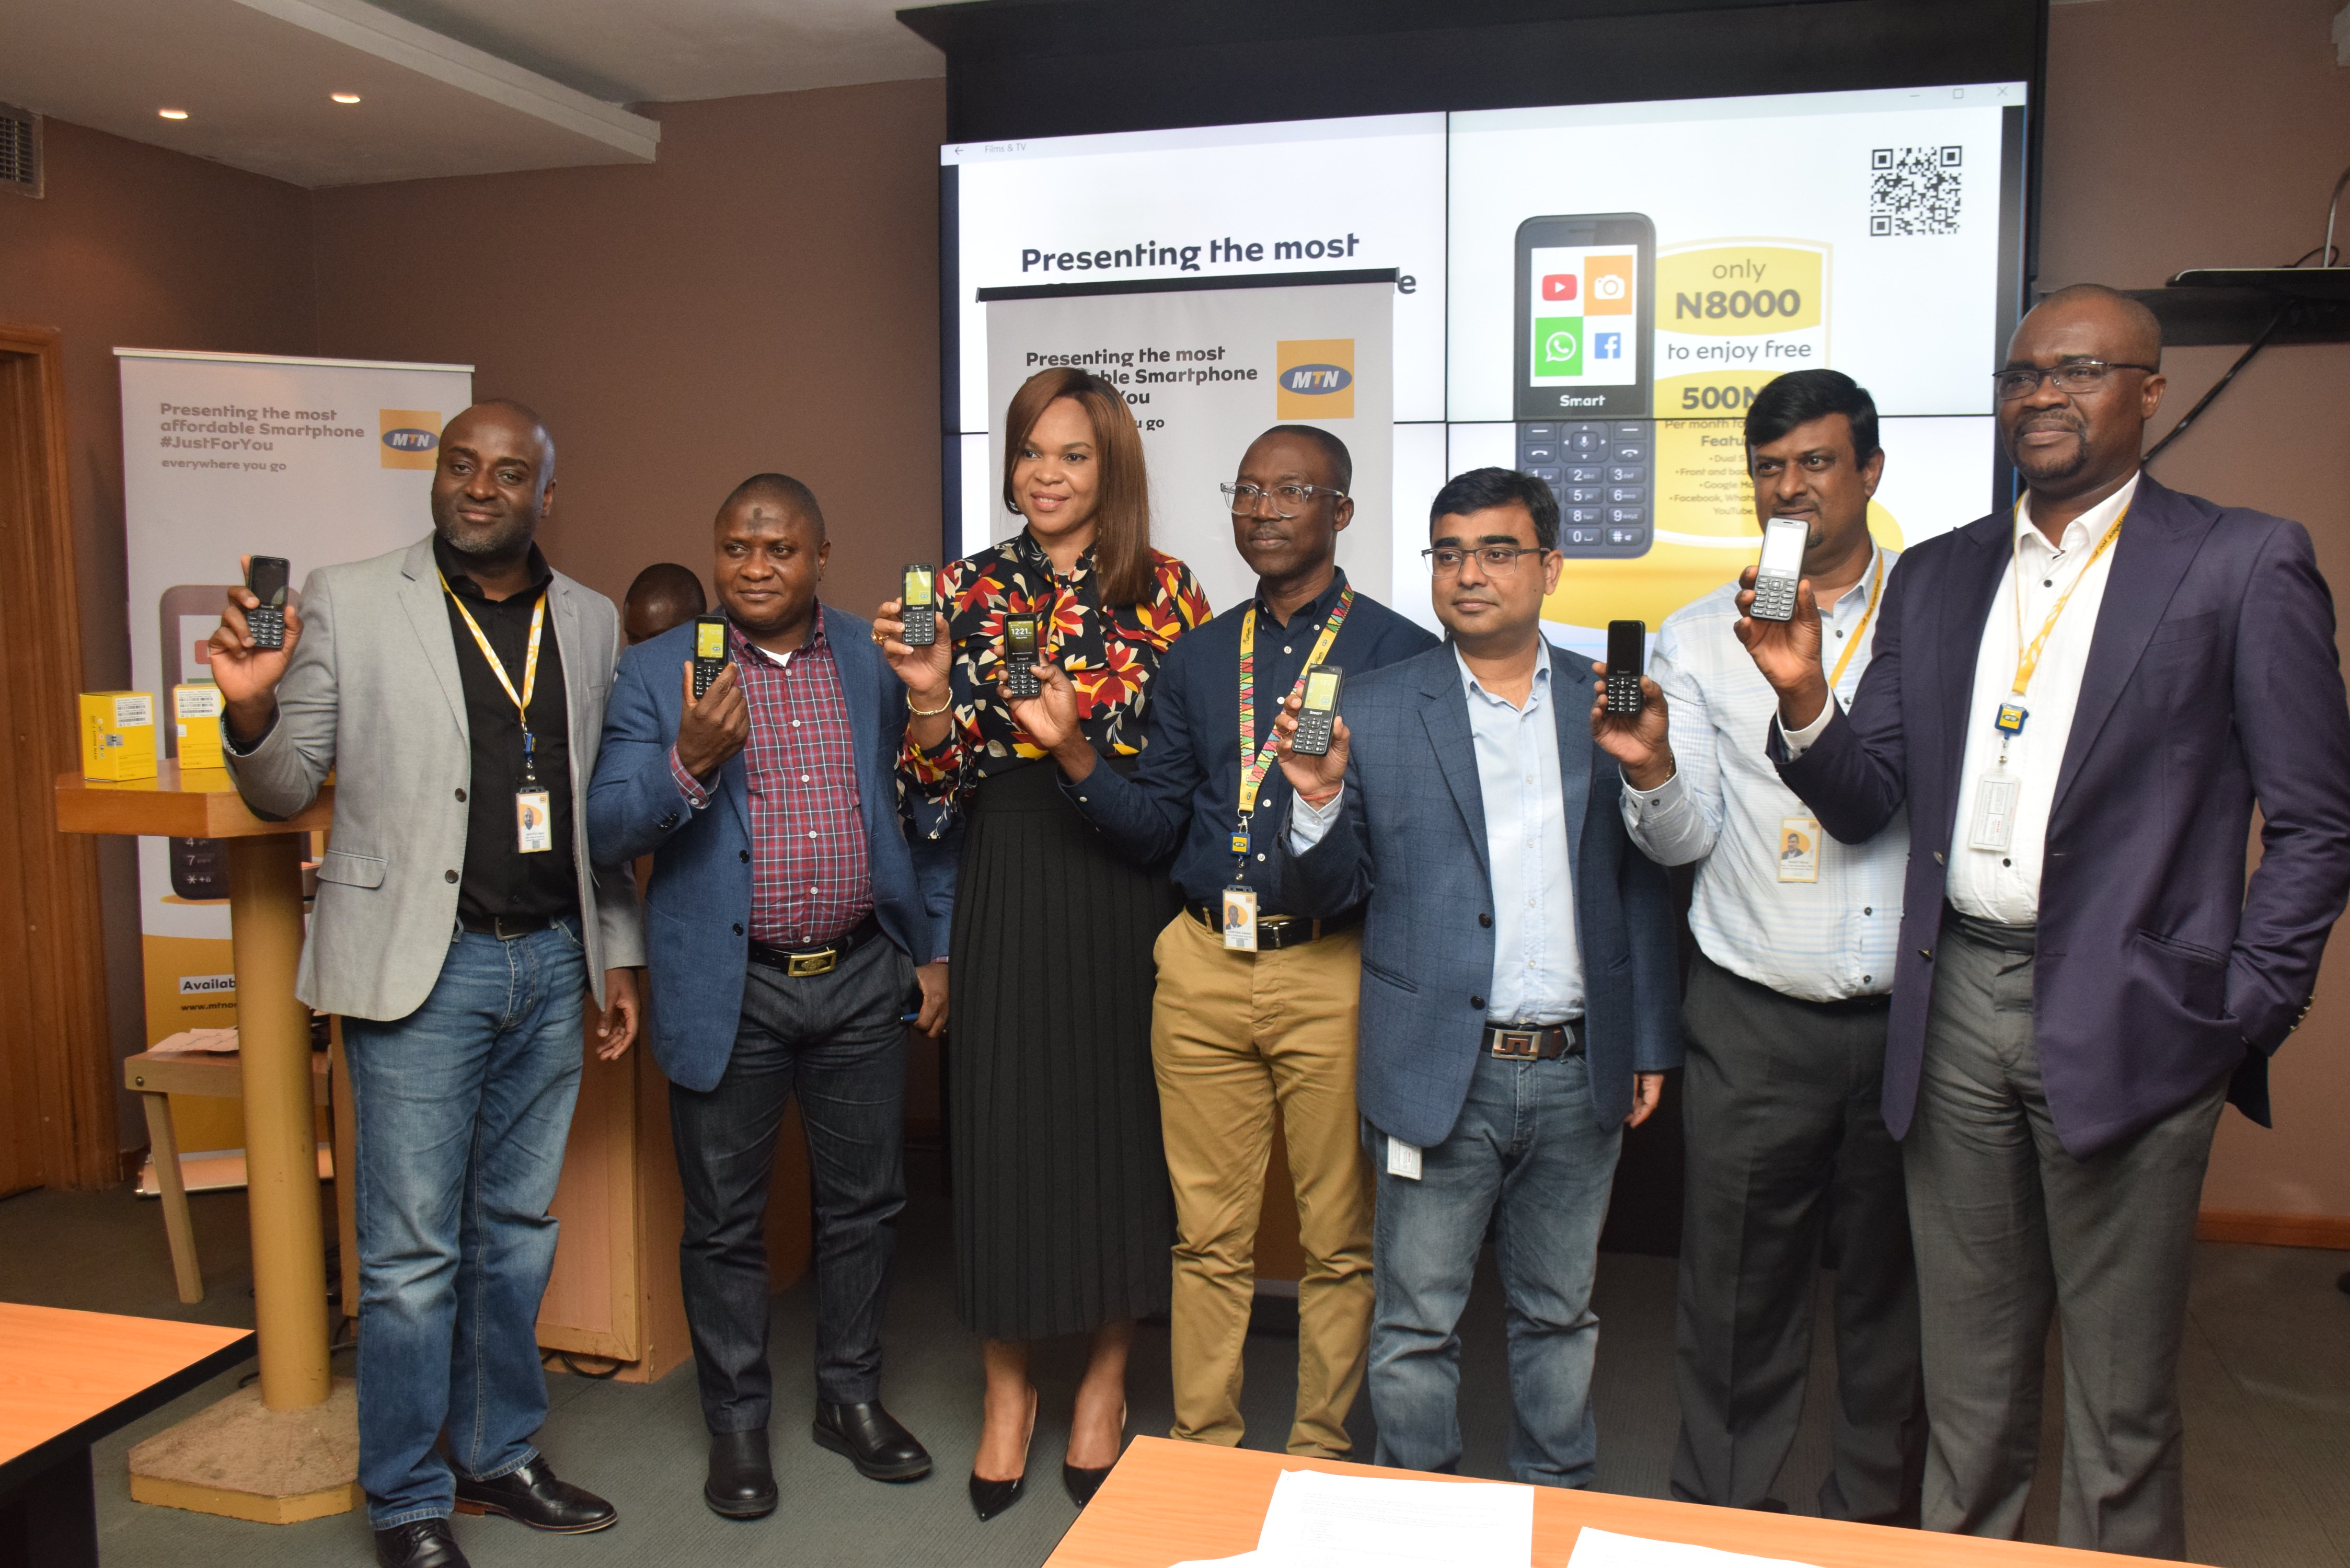 MTN Nigeria launches West Africa's first e-SIM technology